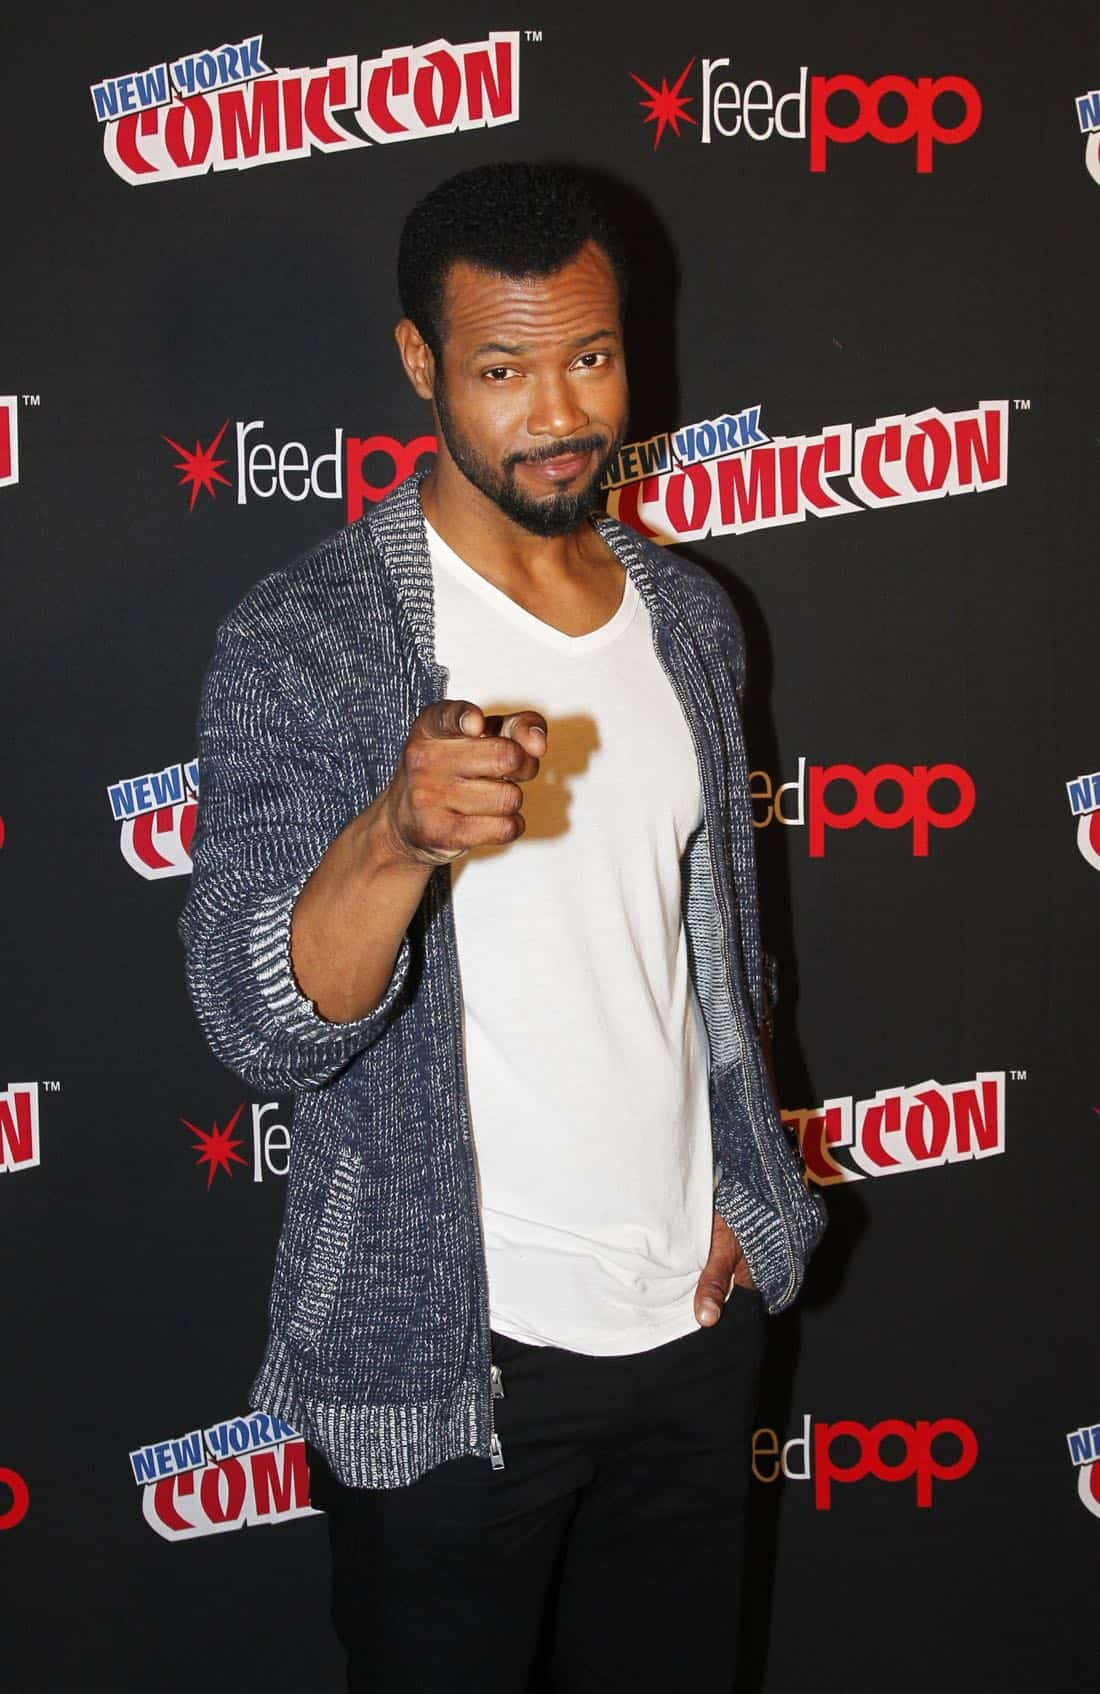 """NY COMIC-CON 2017 - Freeform's genre programming was out in full force at this year's New York Comic Con on Saturday, October 7th with executive producers and cast from the hit series """"Shadowhunters,"""" """"Beyond,"""" and new original series """"Siren.""""  (ABC/Lou Rocco) ISAIAH MUSTAFA"""